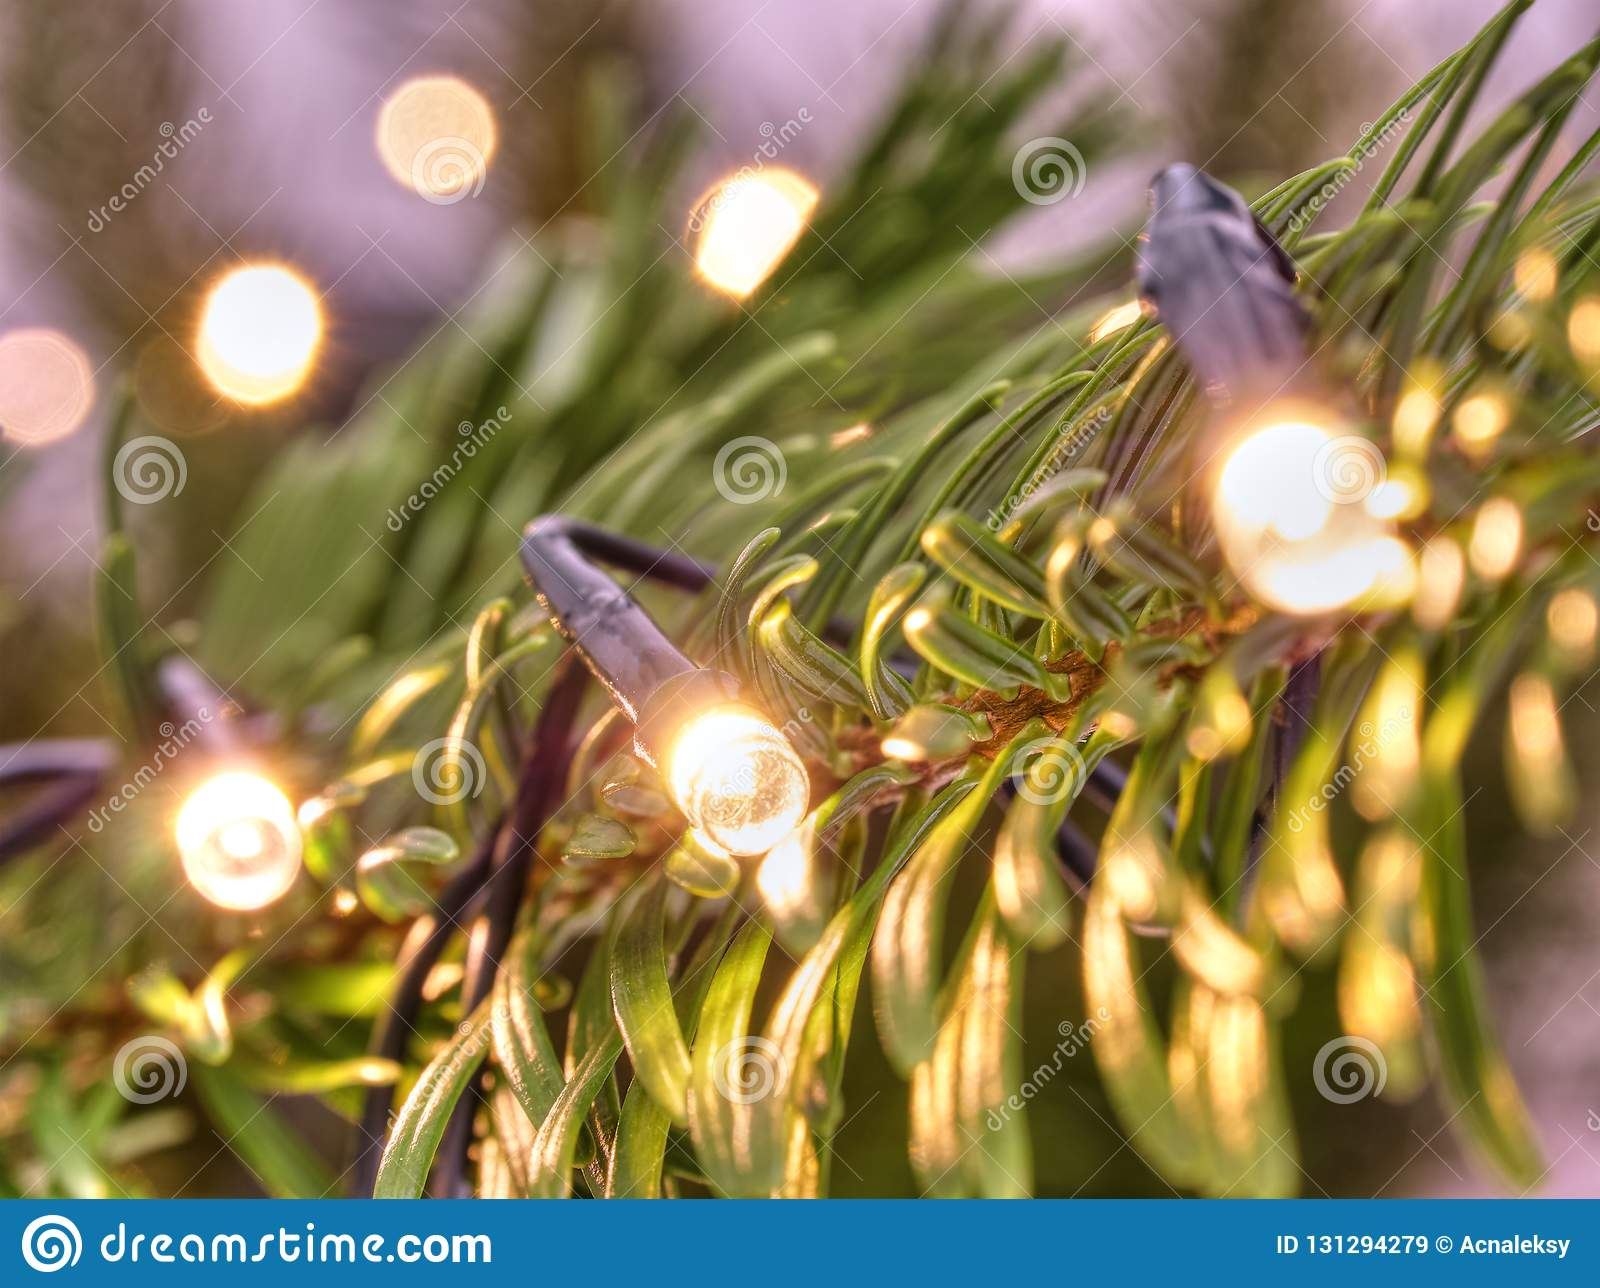 Glowing Christmas lights. Christmas tree decorated with garlands